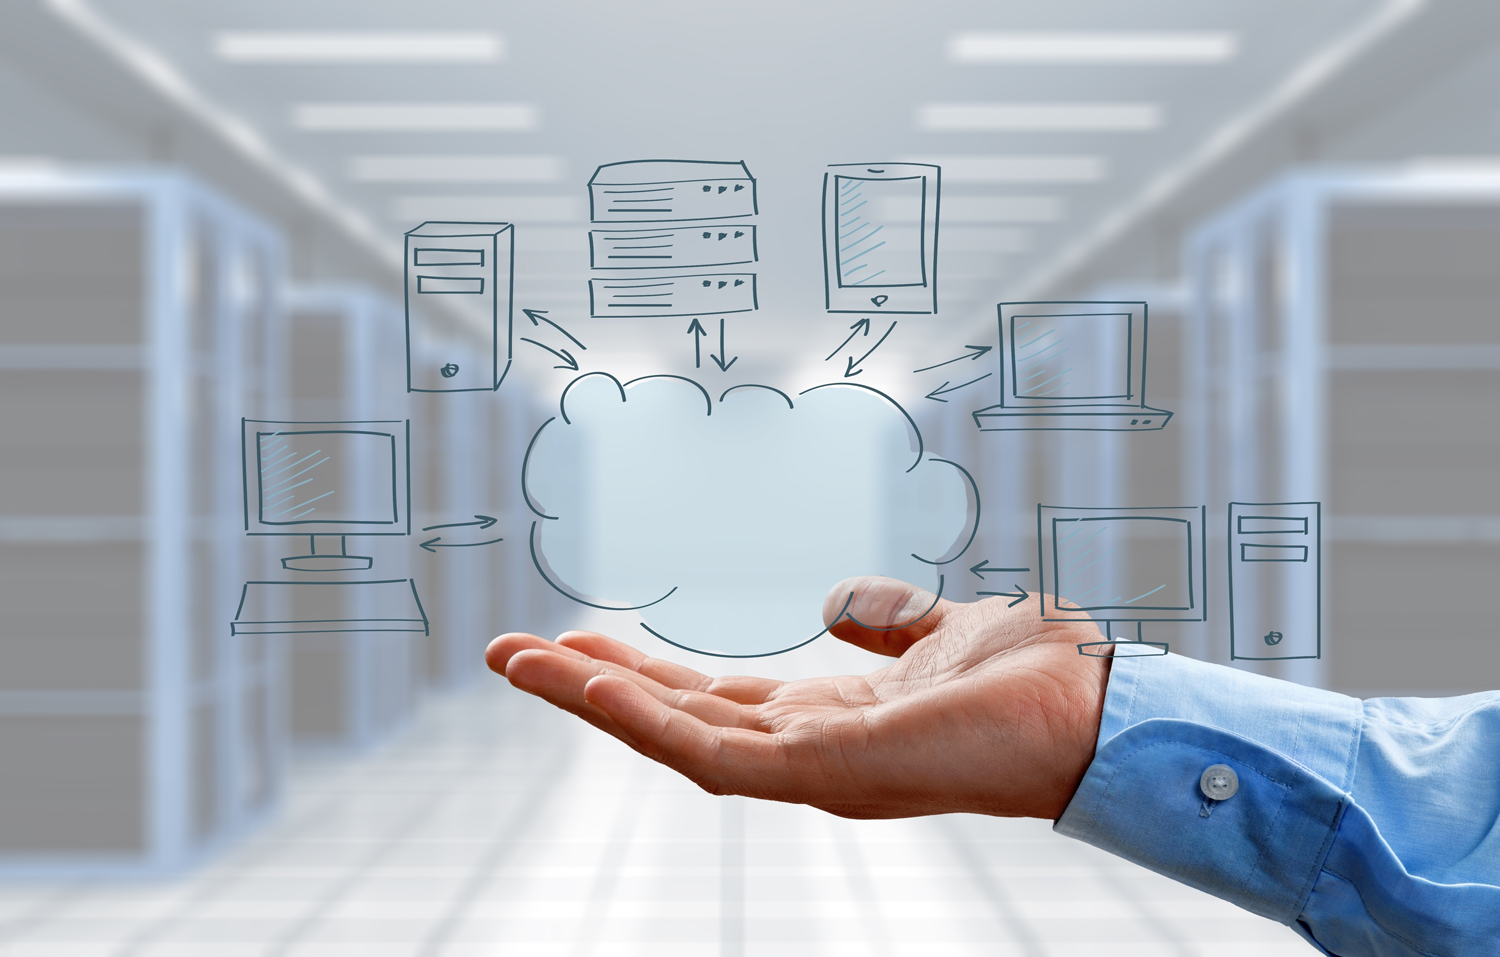 Cloud Backups: An Introductory Cloud Use Case Worth Considering